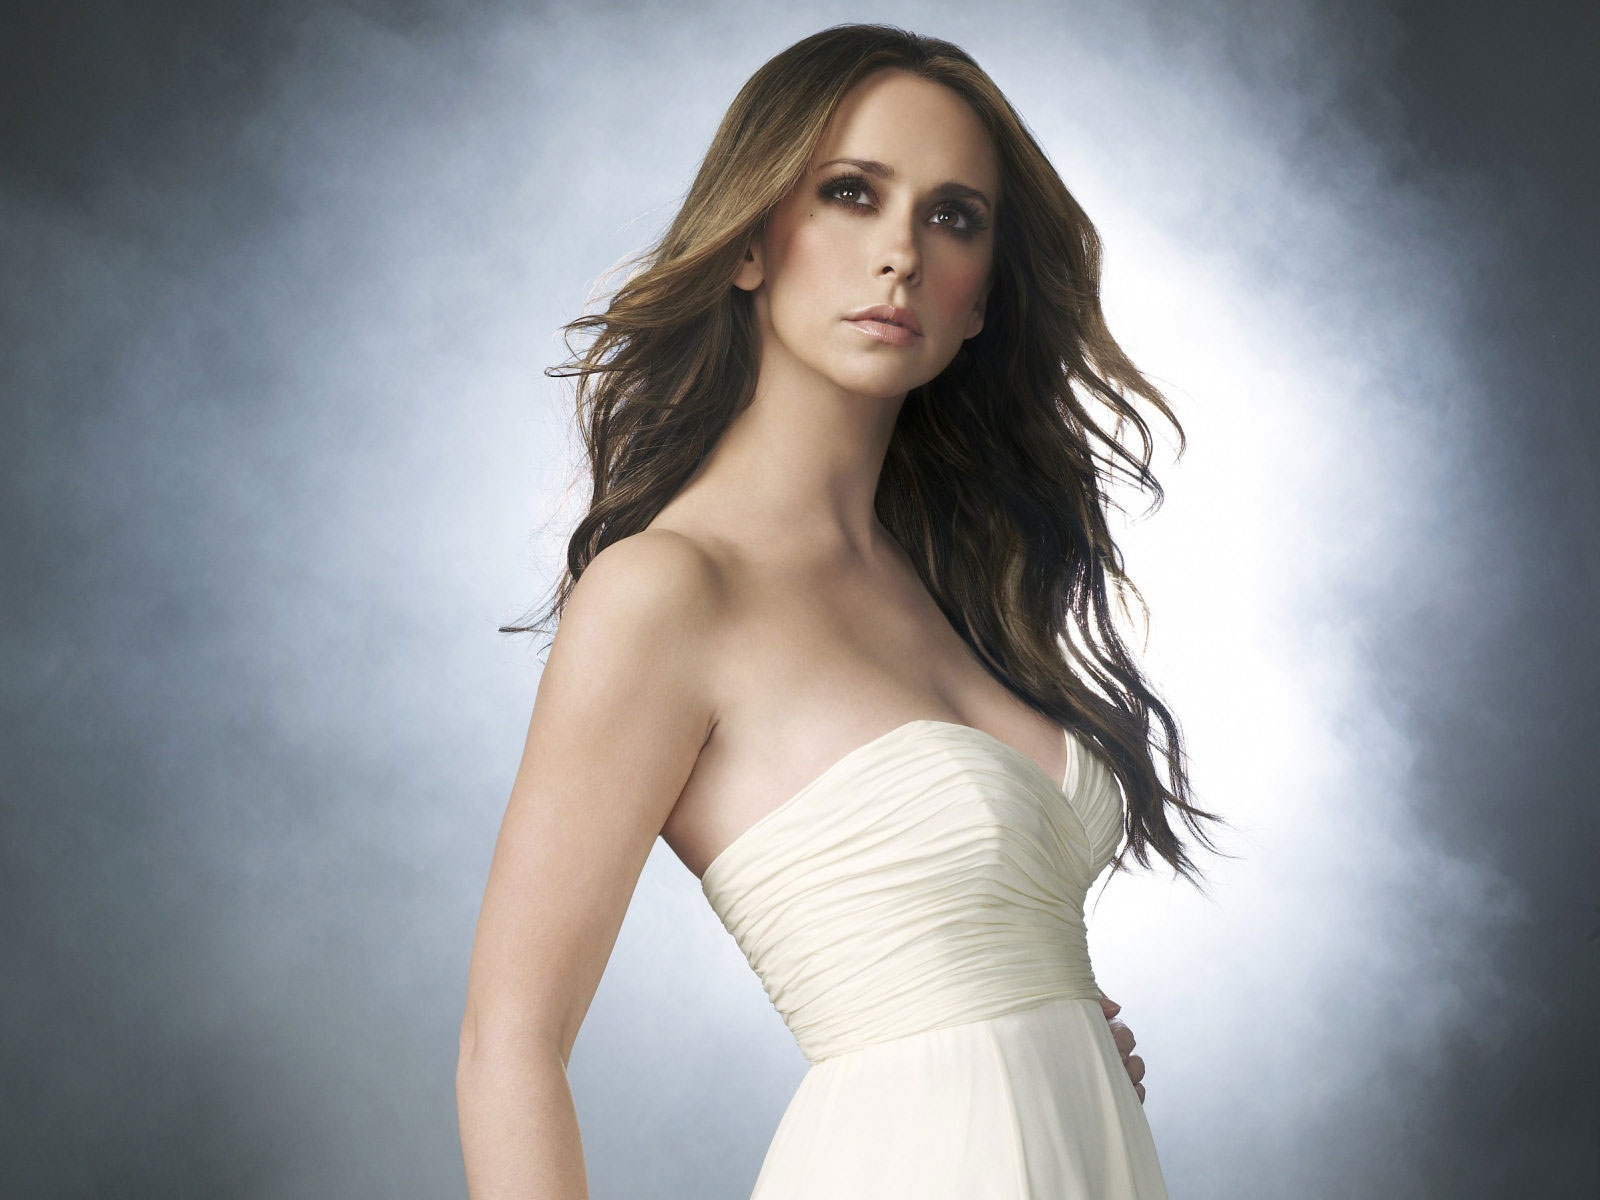 jennifer love hewitt wallpapers hd A3